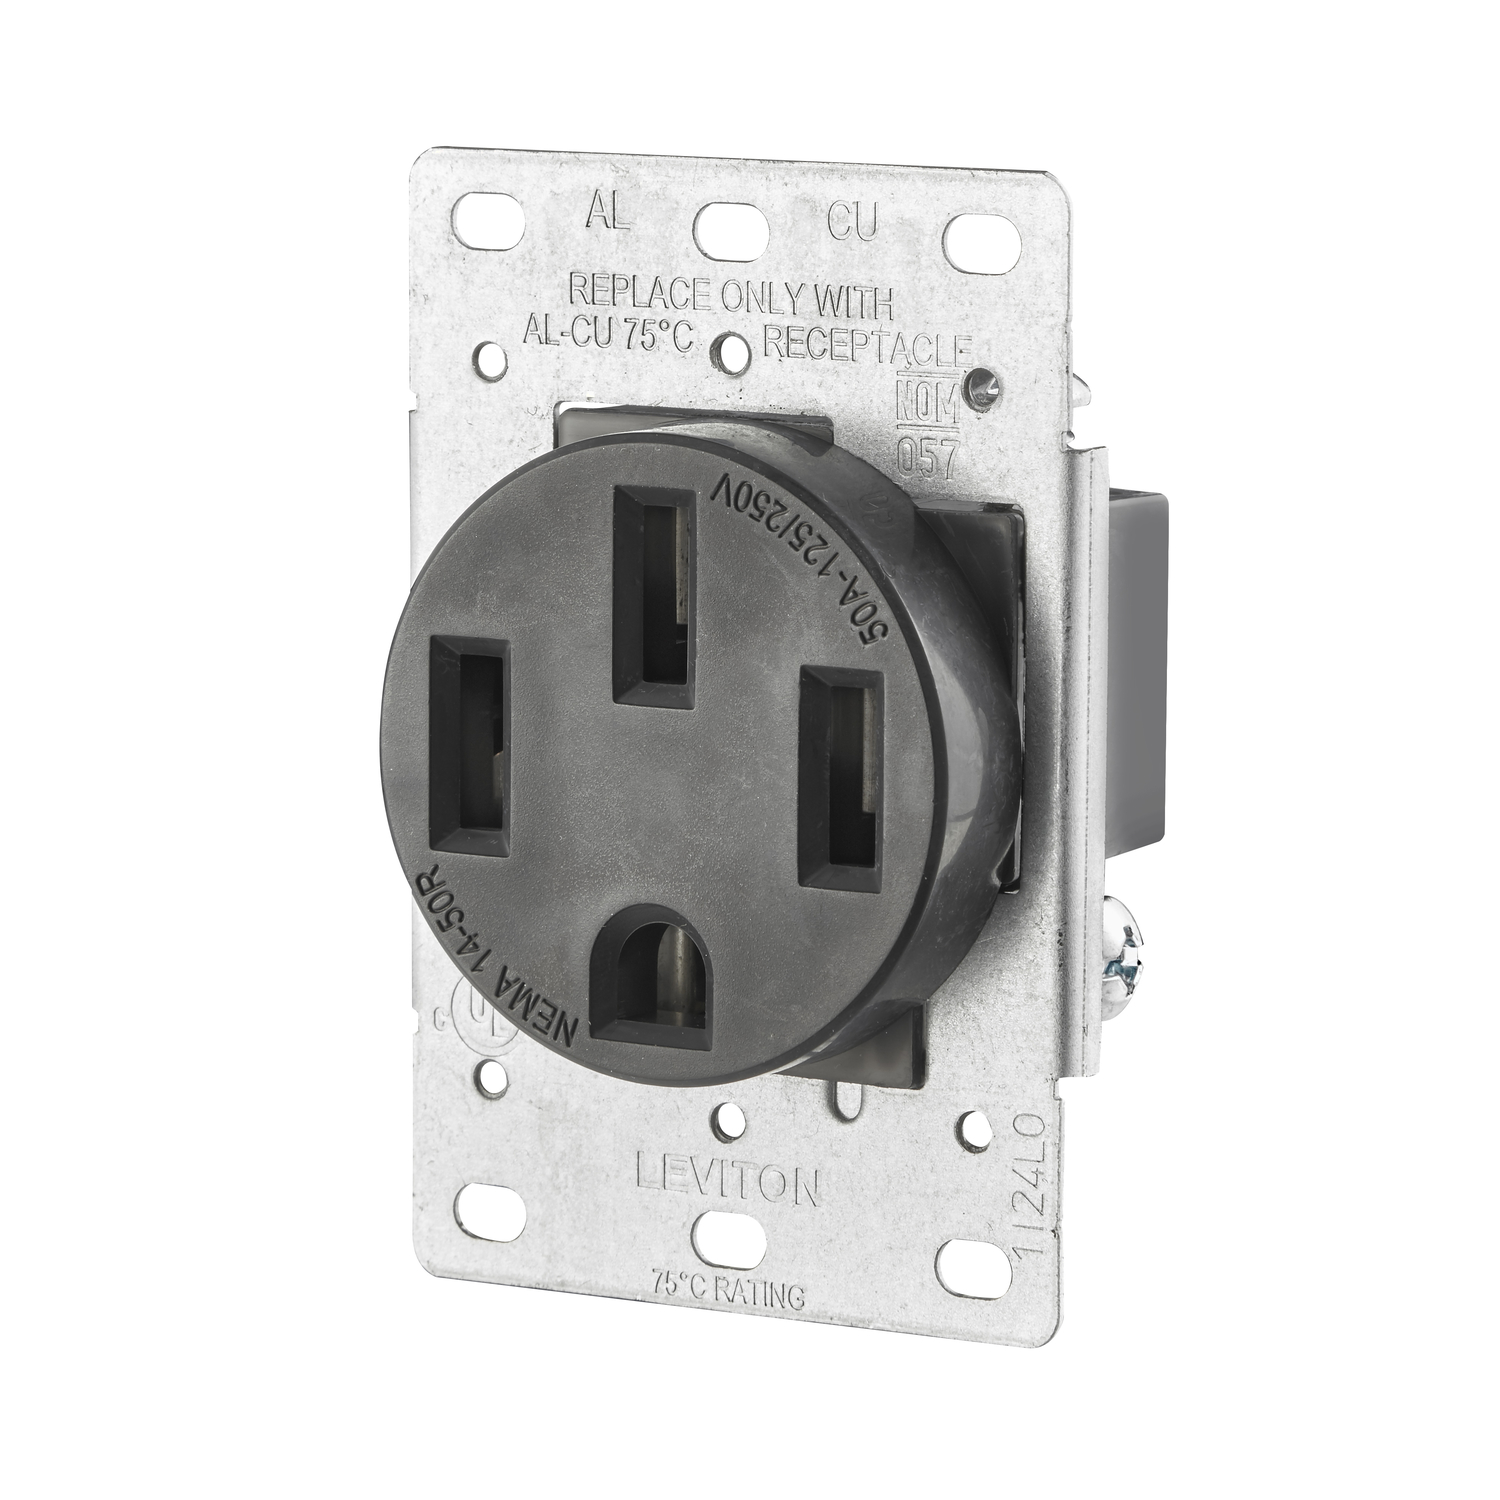 Leviton  50 amps 125/250 volt Black  Outlet  14-50R  1 pk